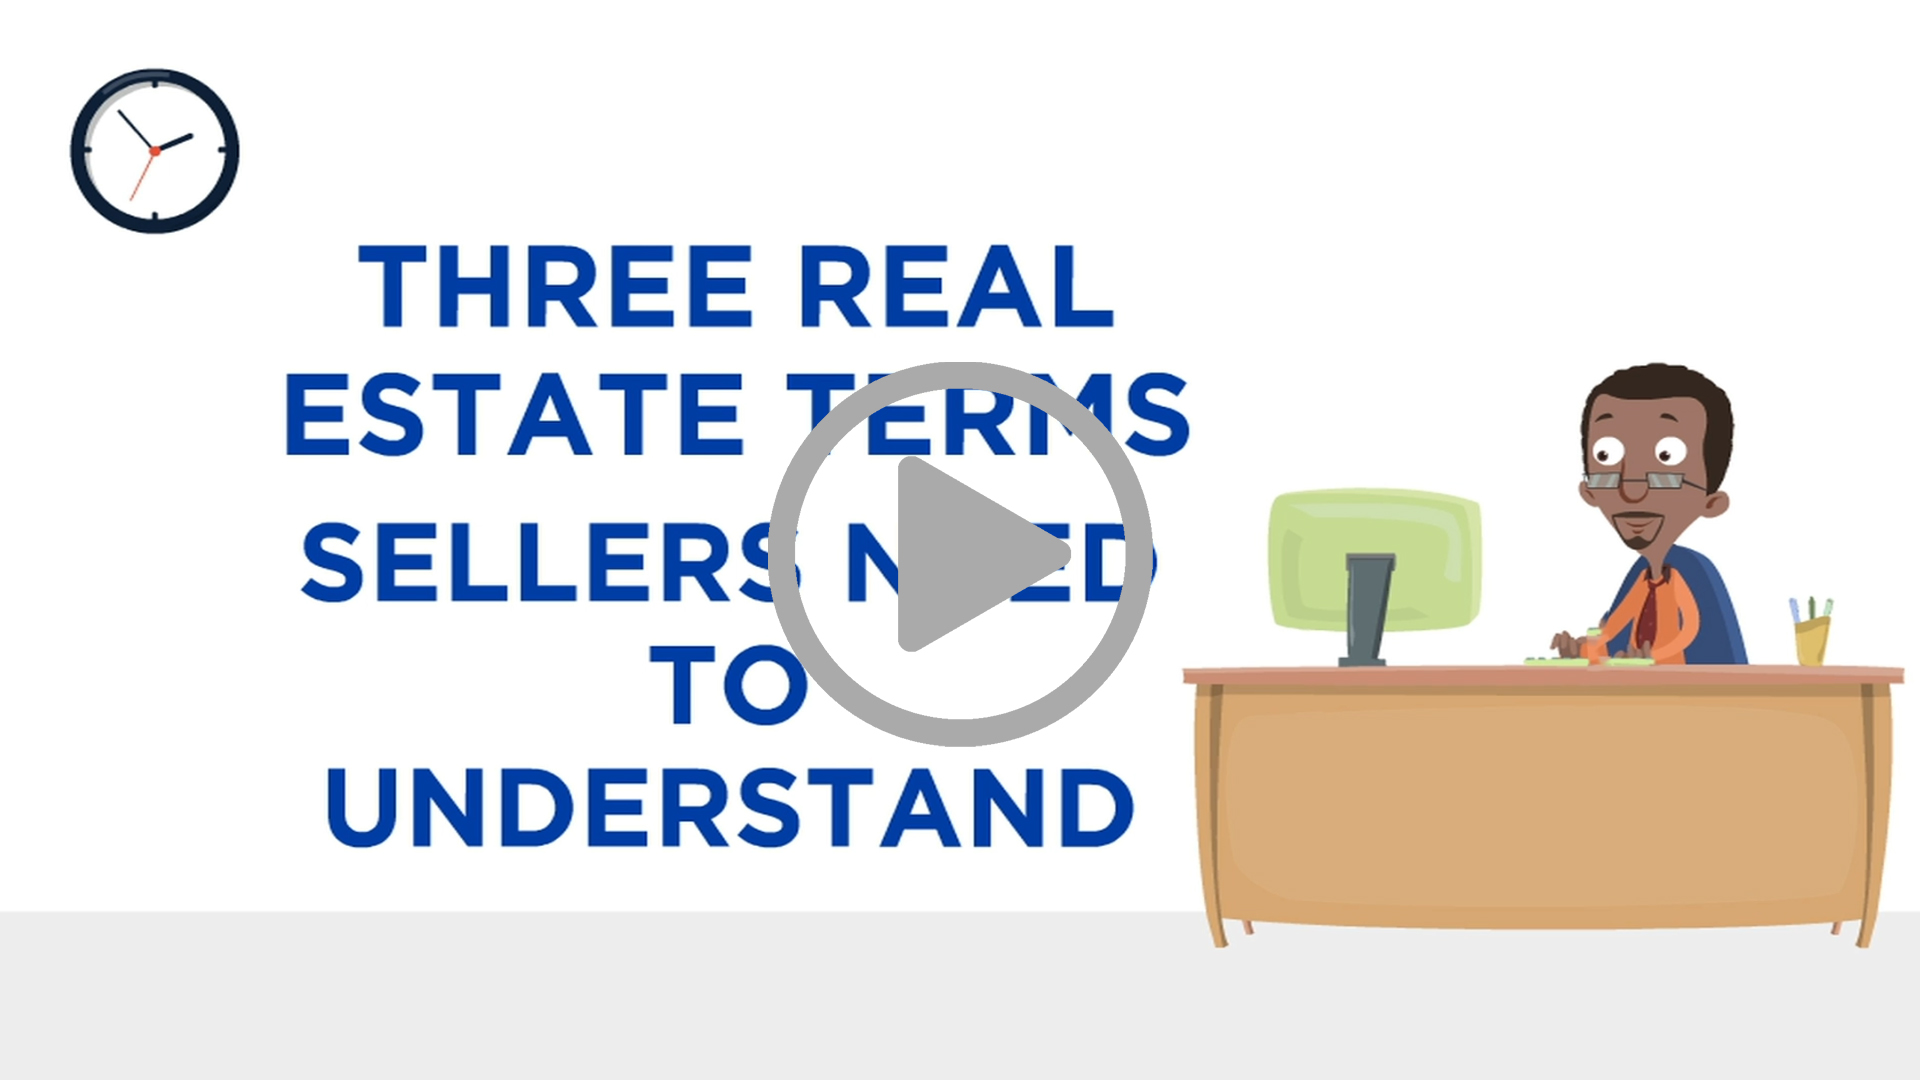 3 REAL ESTATE TERMS SELLERS NEED TO UNDERSTAND